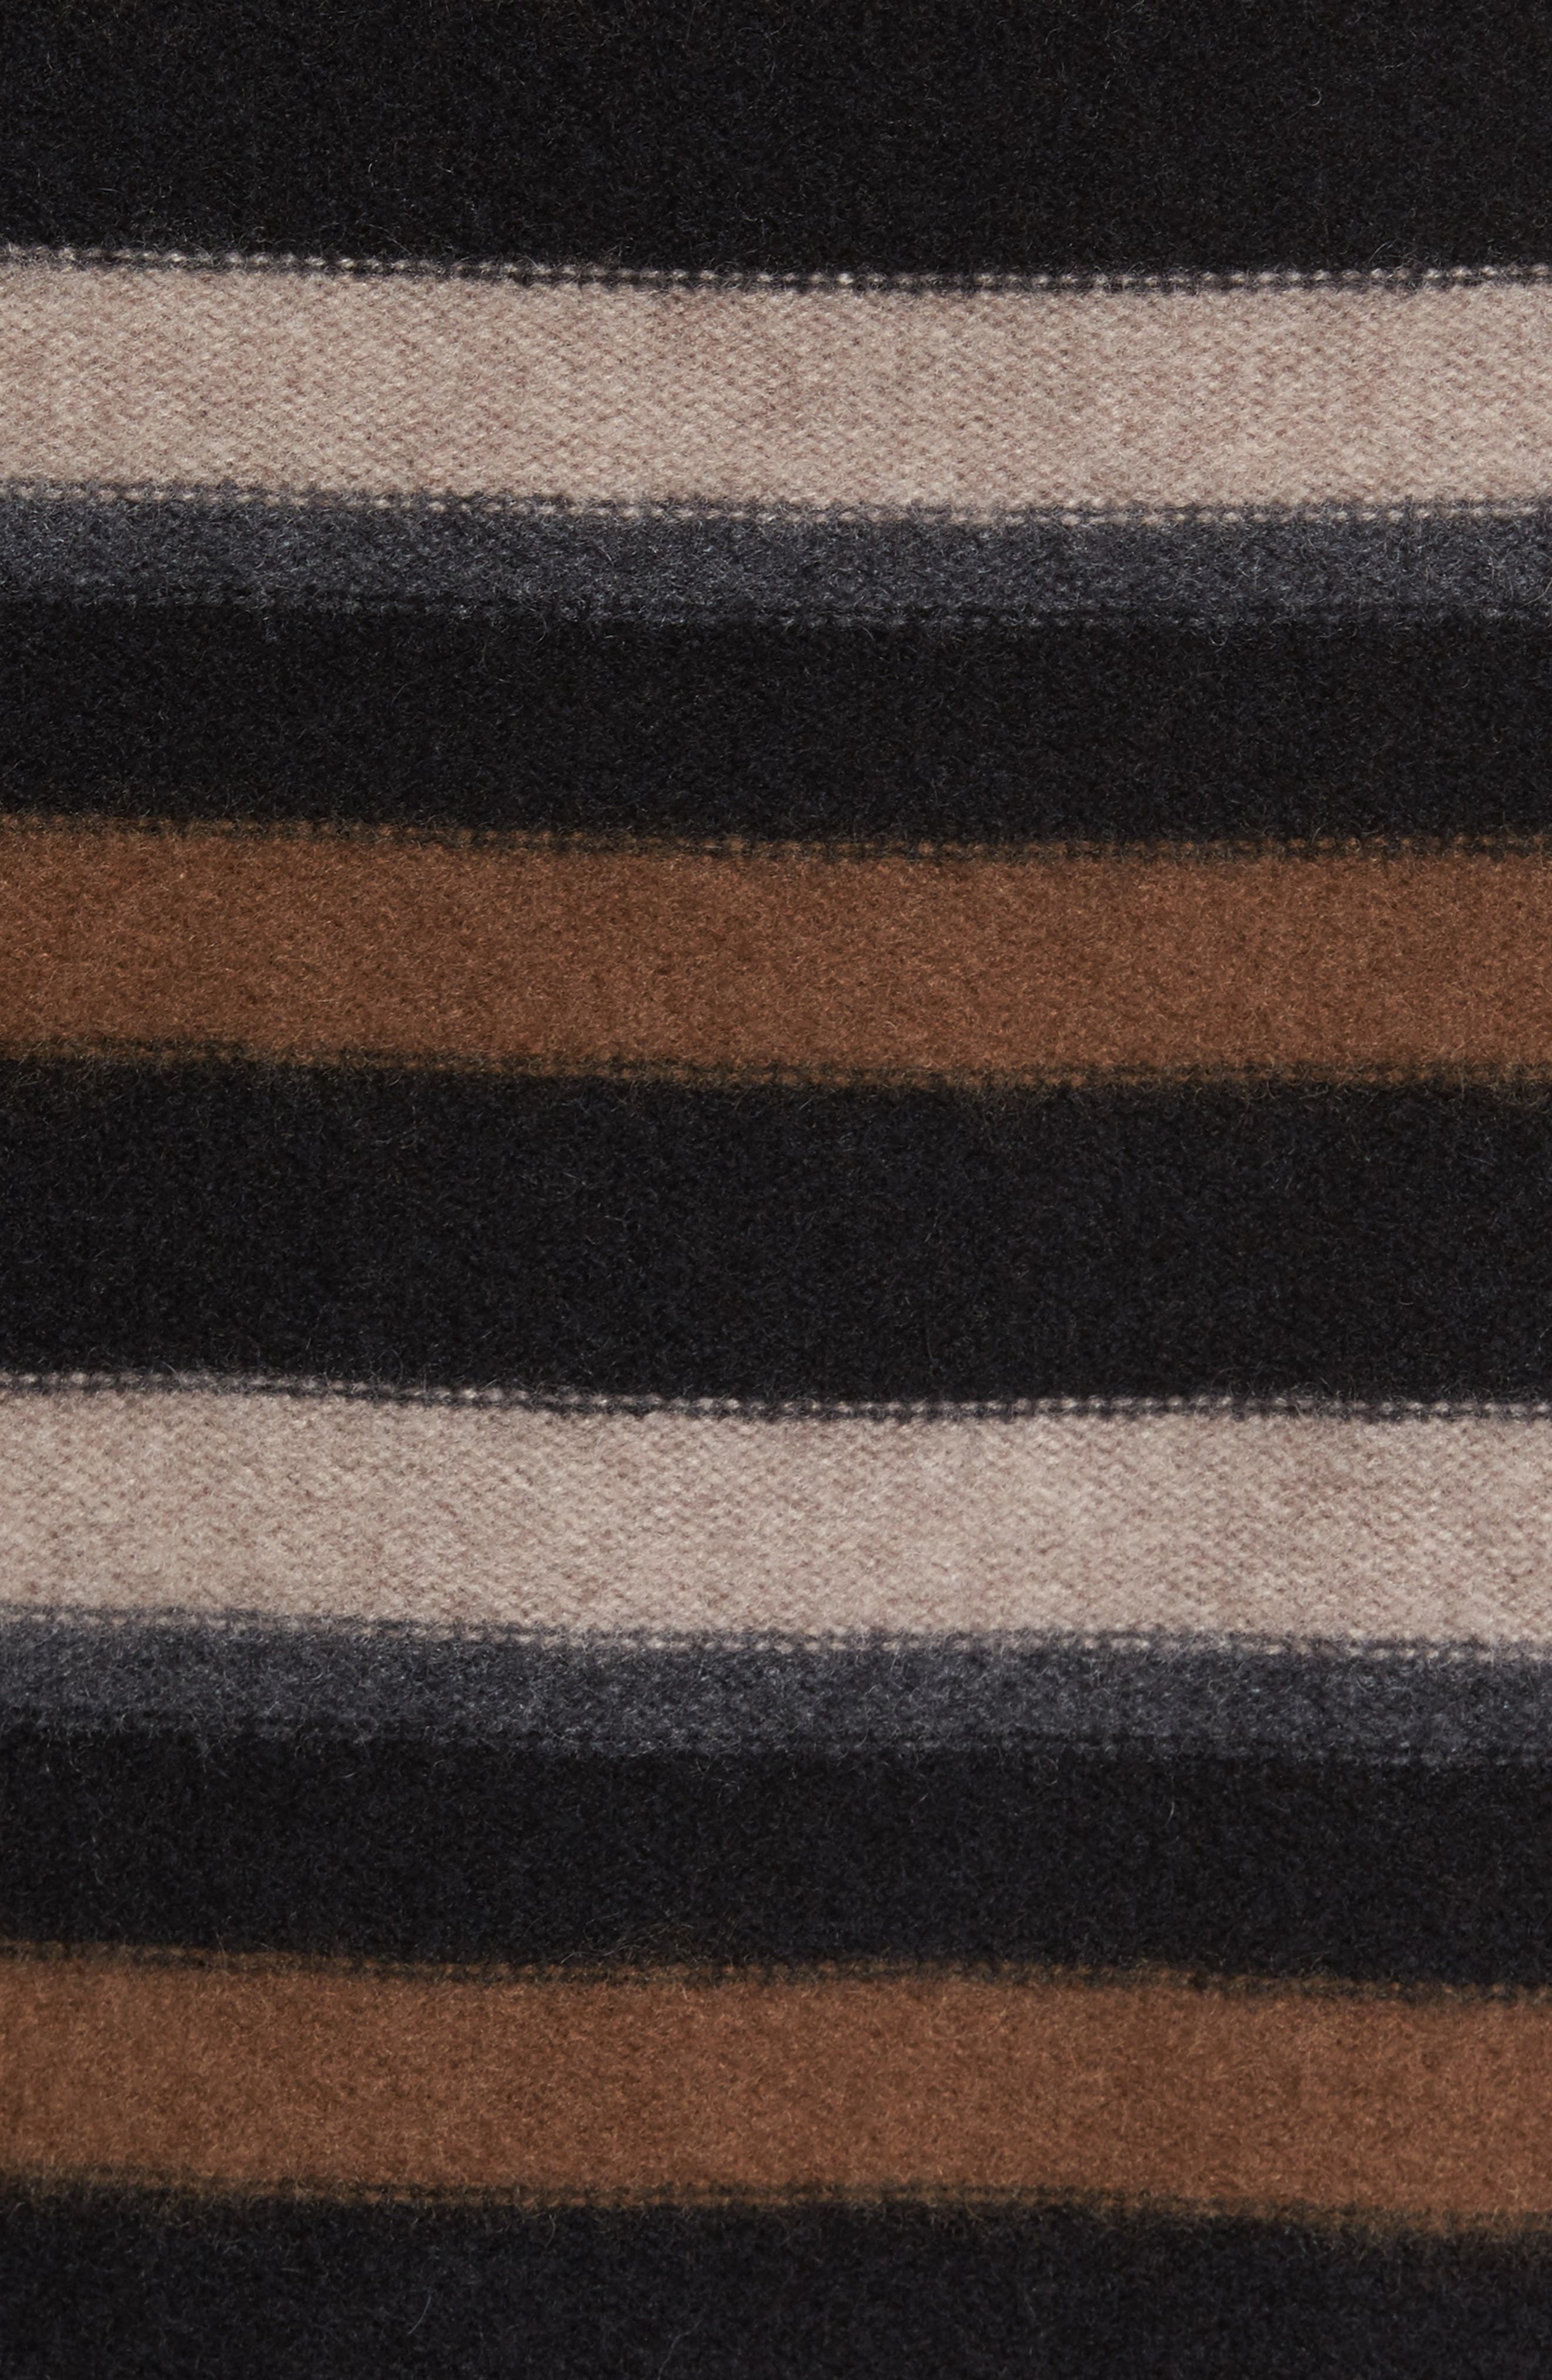 Stripe Cashmere Sweater,                             Alternate thumbnail 5, color,                             003